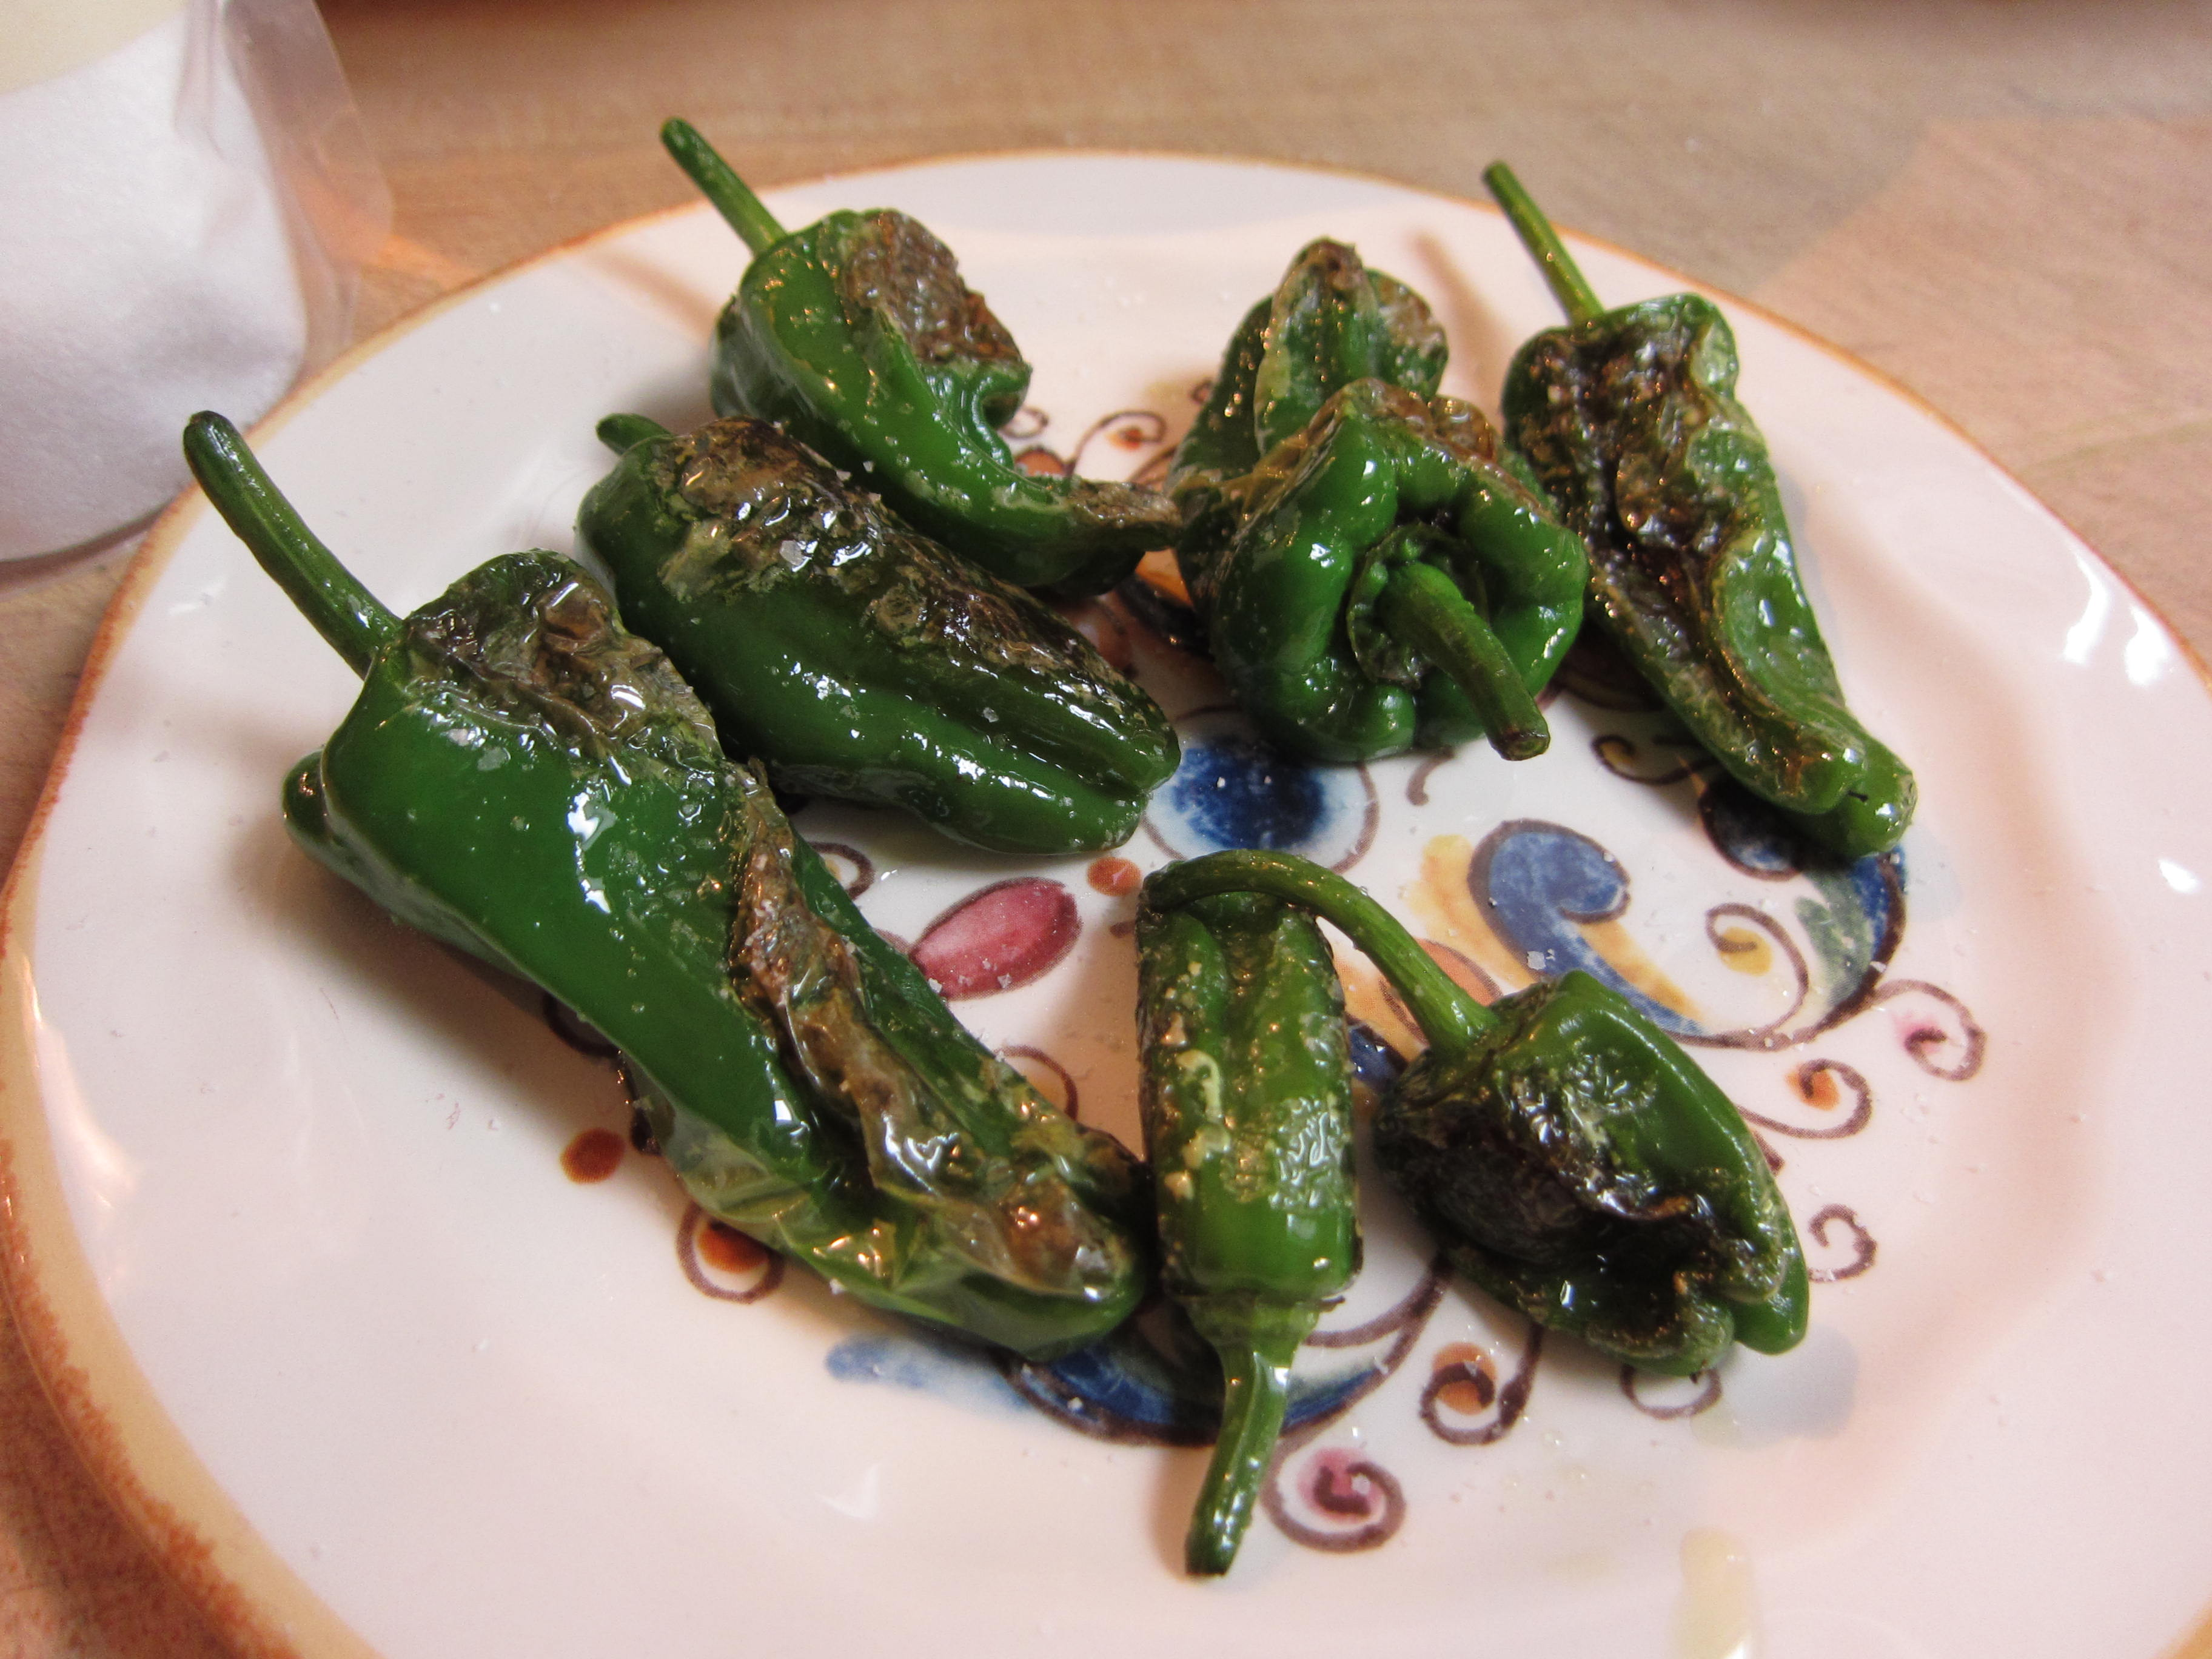 Blistered padrón peppers are easy and quick to make.